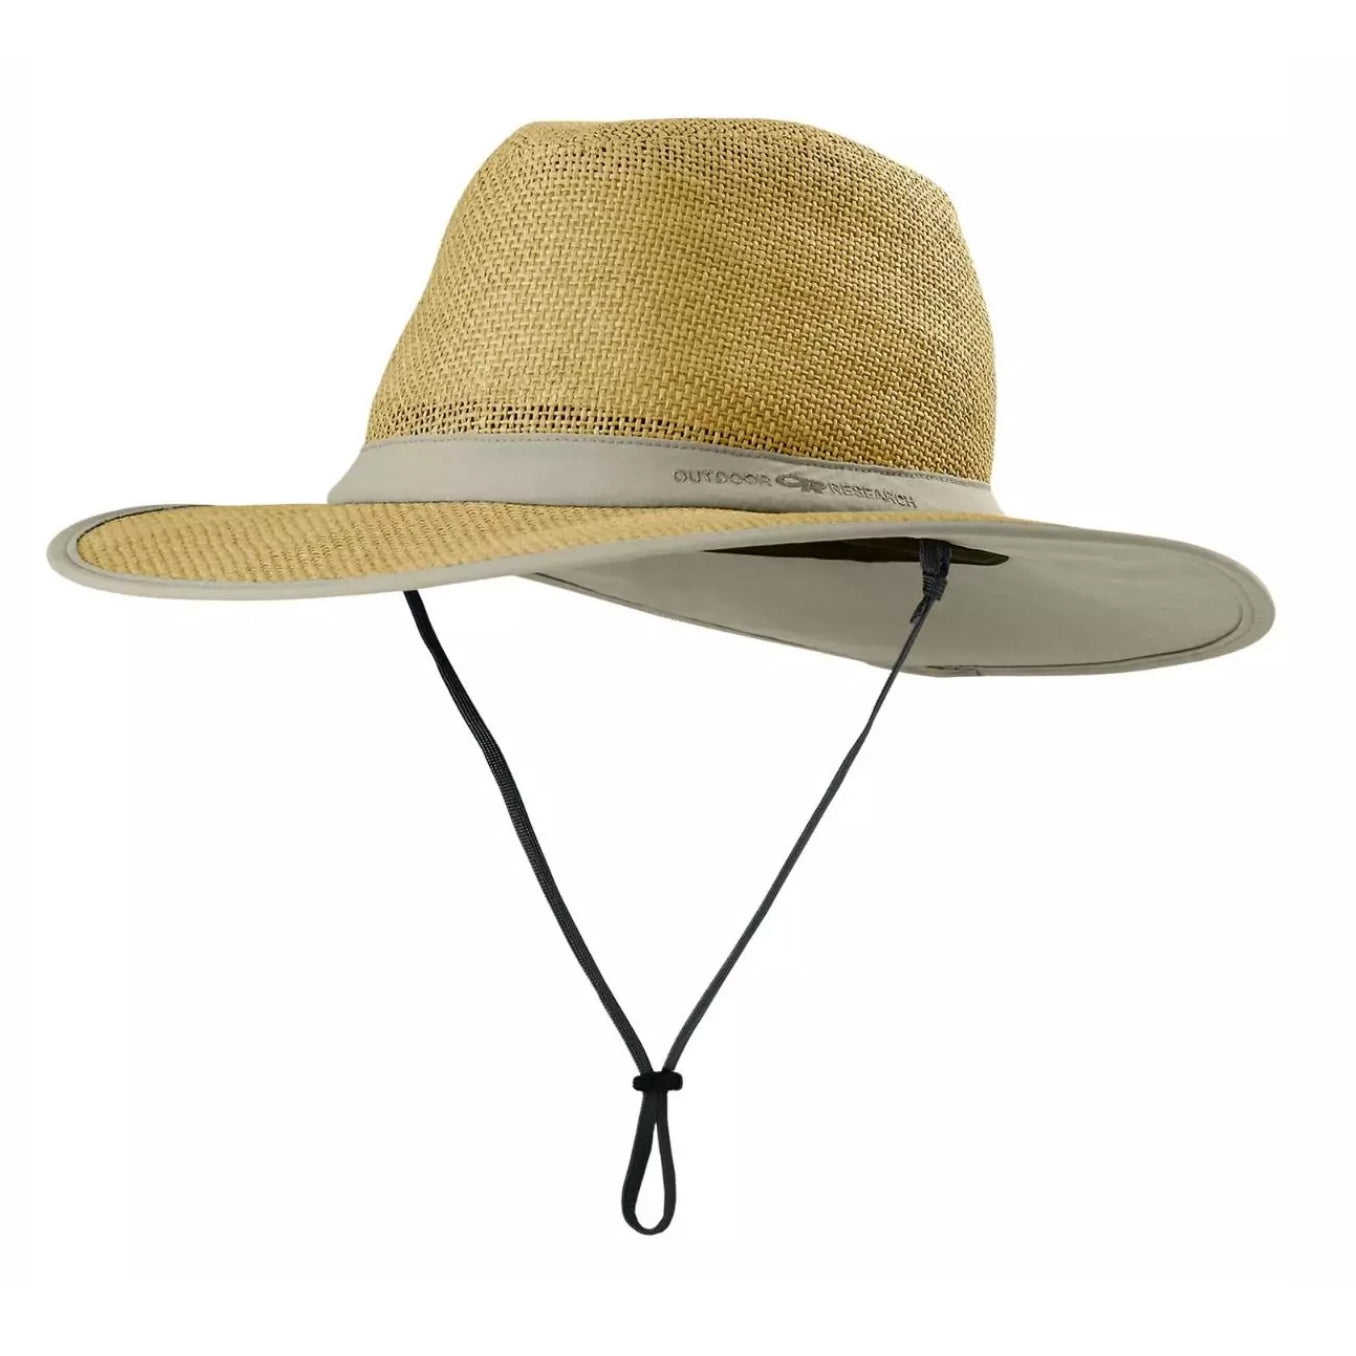 outdoor research papyrus brim hat front view